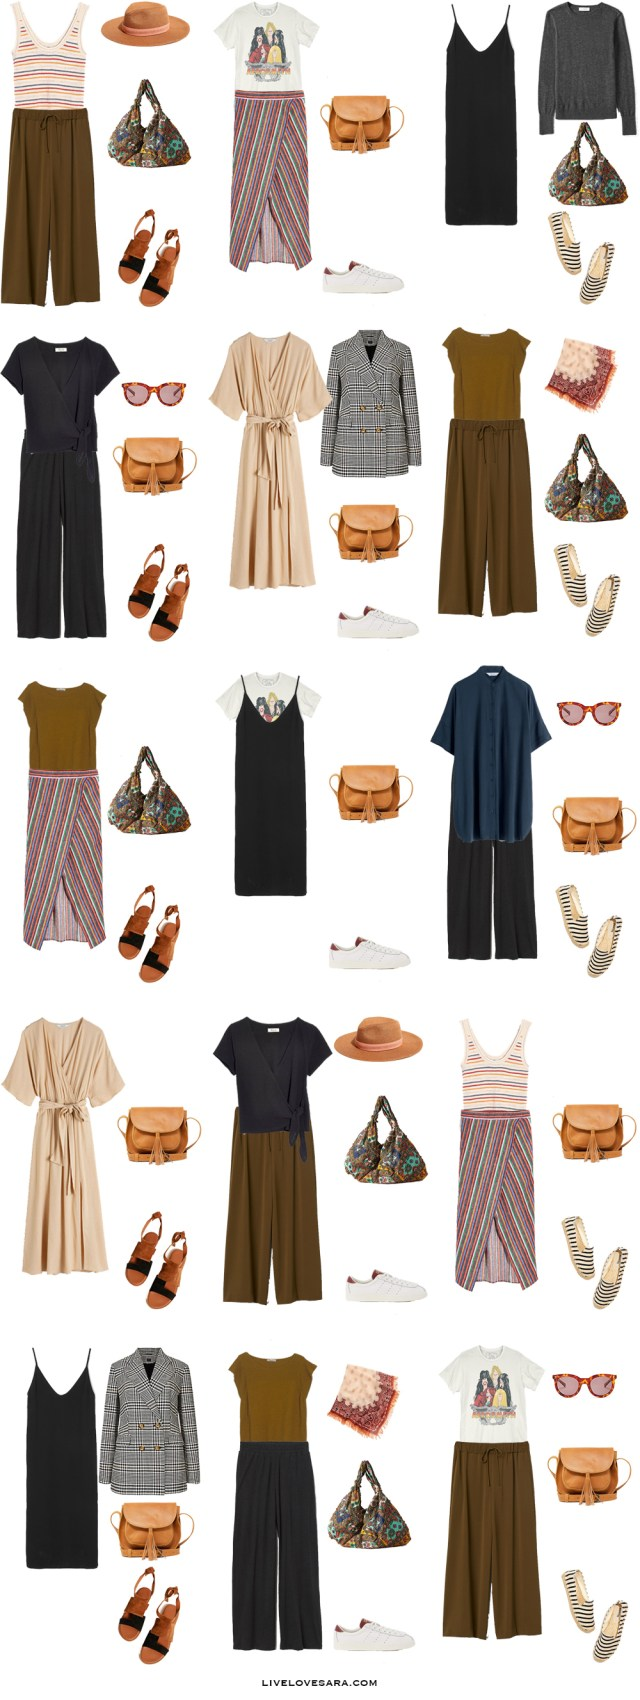 South of France Packing list and outfit ideas